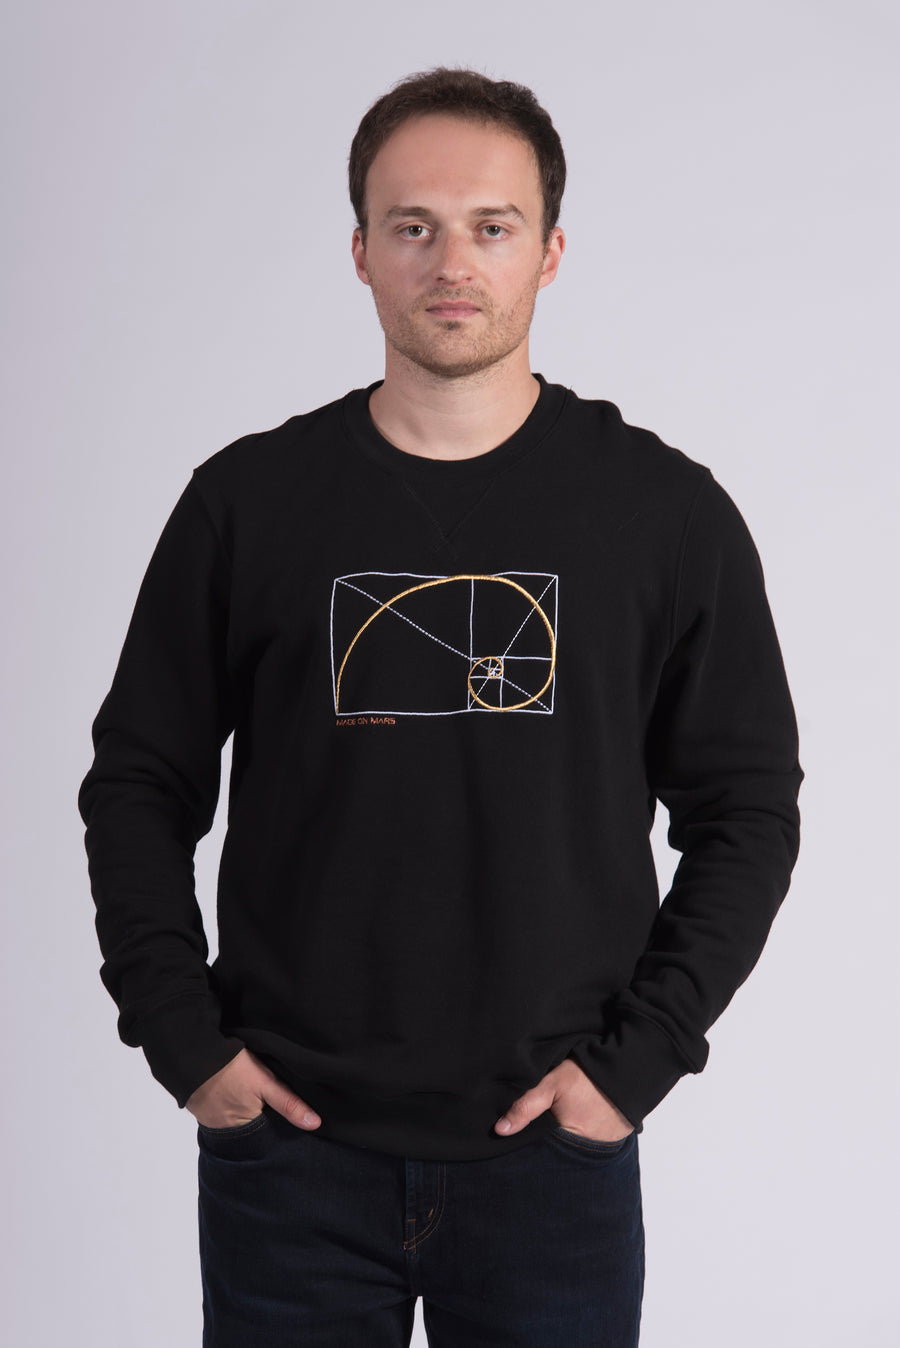 Golden Ratio Embroidery Black Cotton Men's Sweatshirt Art